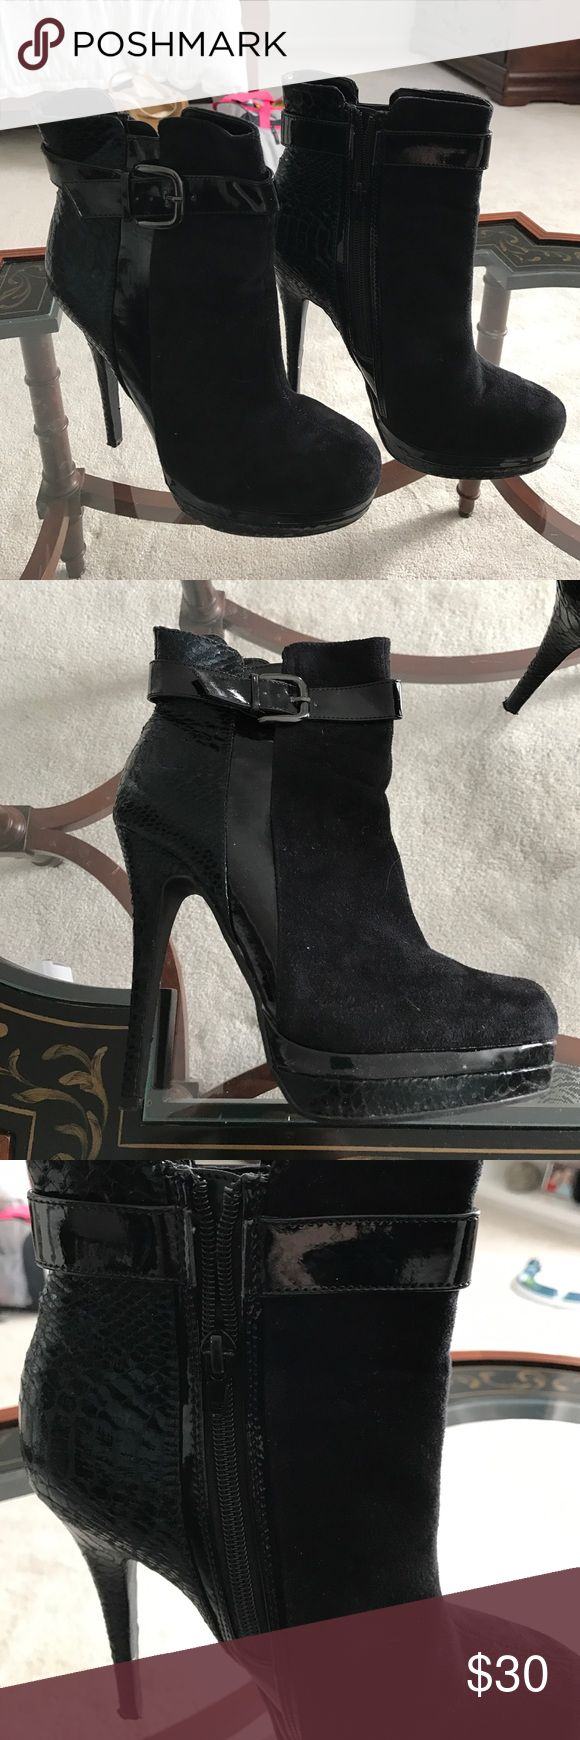 Black high heeled booties Gorgeous black high heeled booties. With inside zipper. Suede and lizard type material. They look amazing on and really make an outfit look sexy and cool. Comes in box. Lightly worn once Call It Spring Shoes Heels